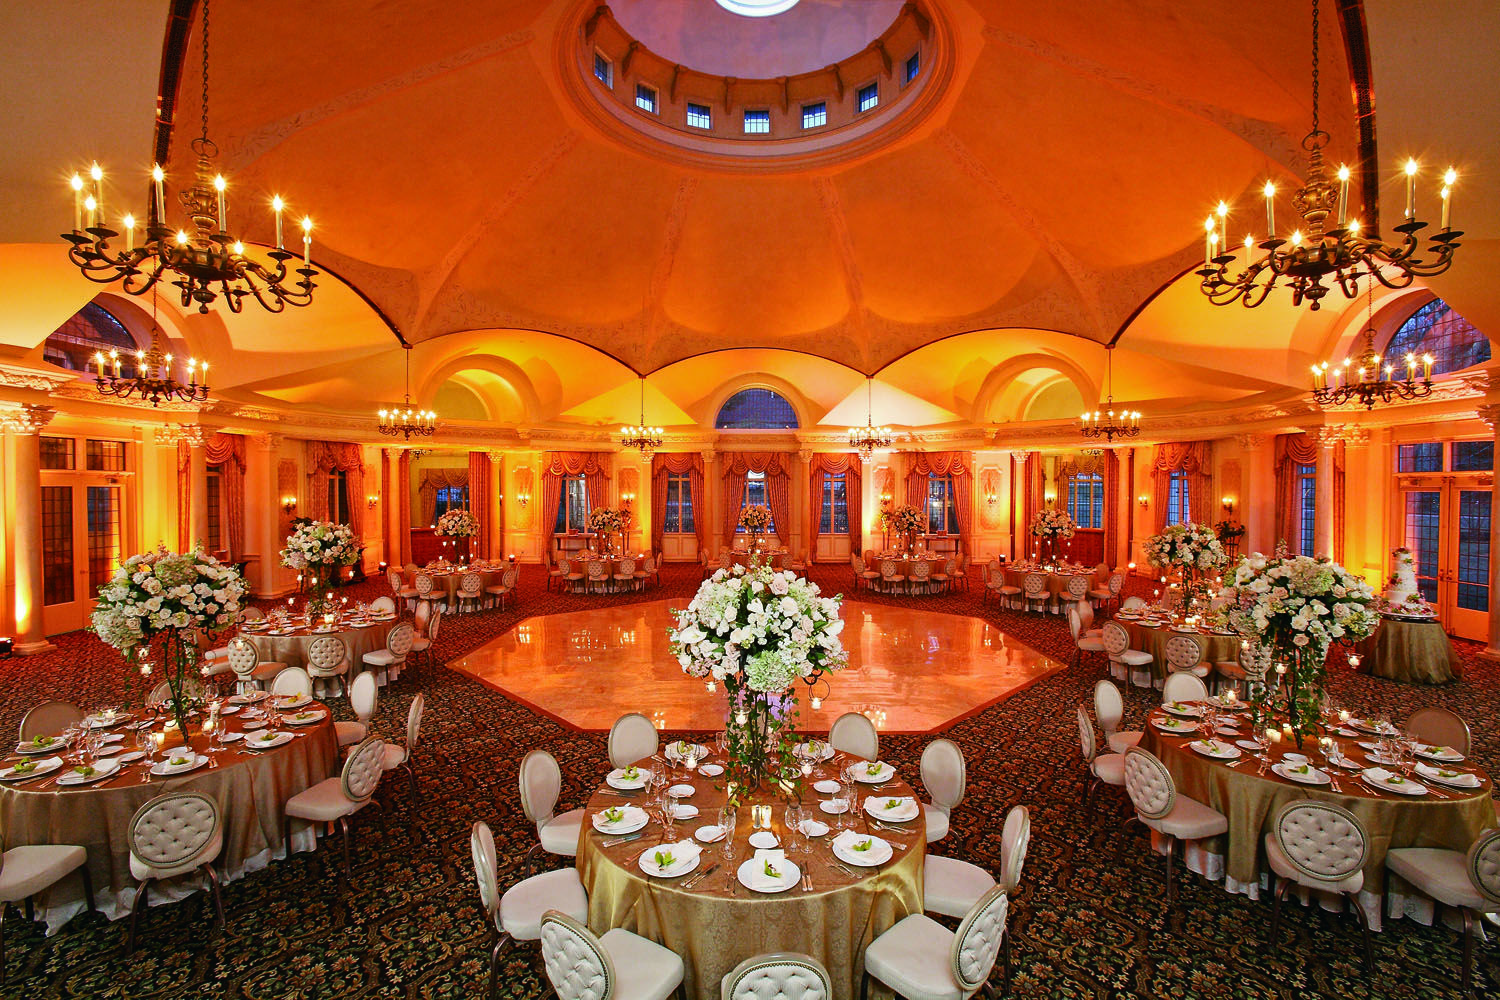 Renewing Your Vows Venue West Orange: Pleasantdale Chateau In West Orange, NJ. AMAZING